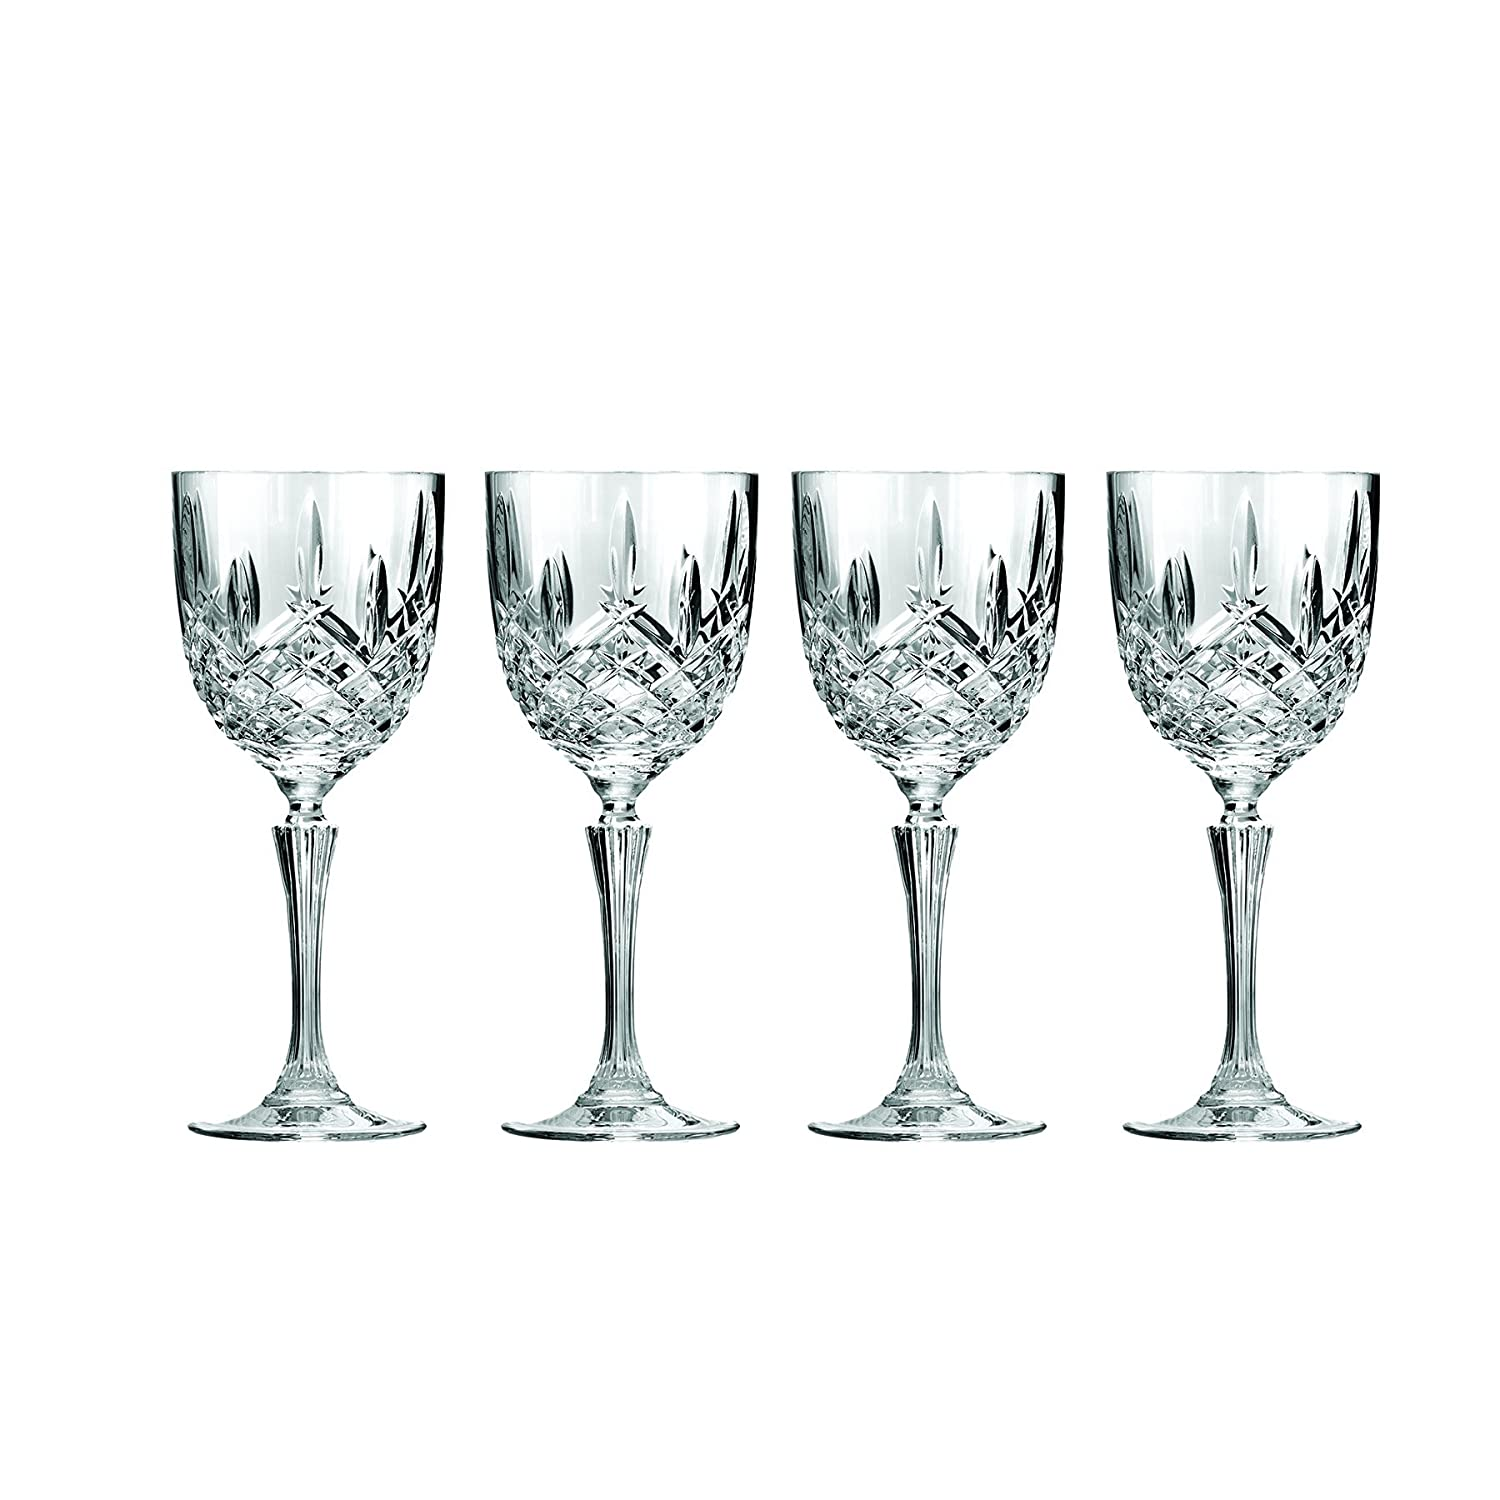 Marquis by Waterford Markham 11 Ounce Double Old Fashioned Glasses Pair and Square Decanter Set, Unleaded Crystal 40026495